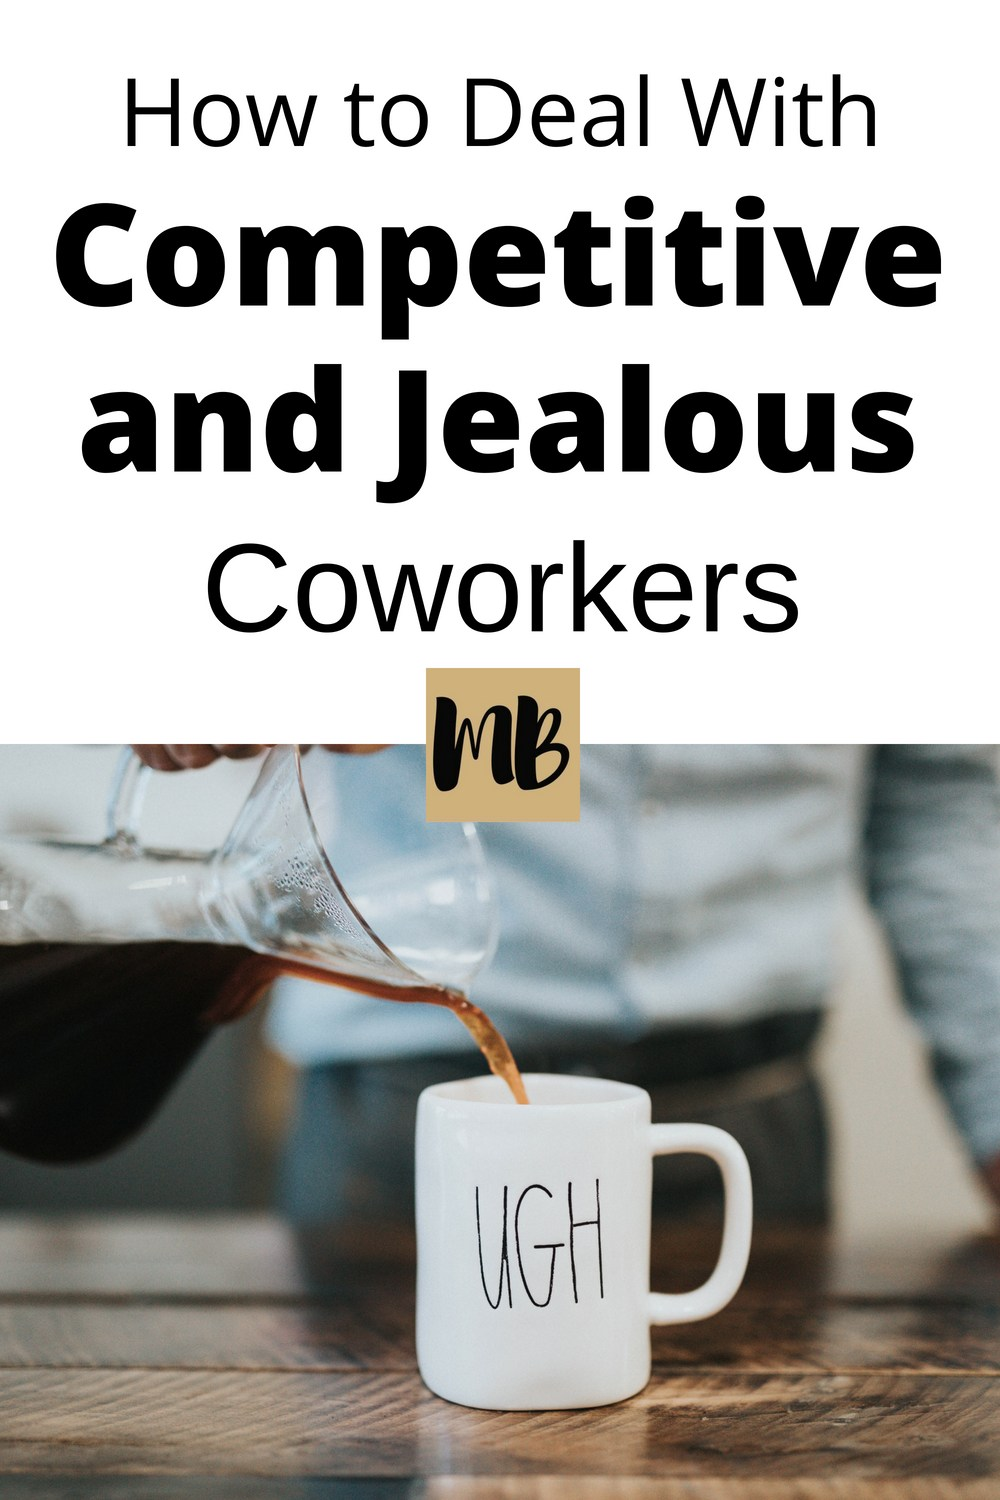 How to Deal with Competitive and Jealous Coworkers